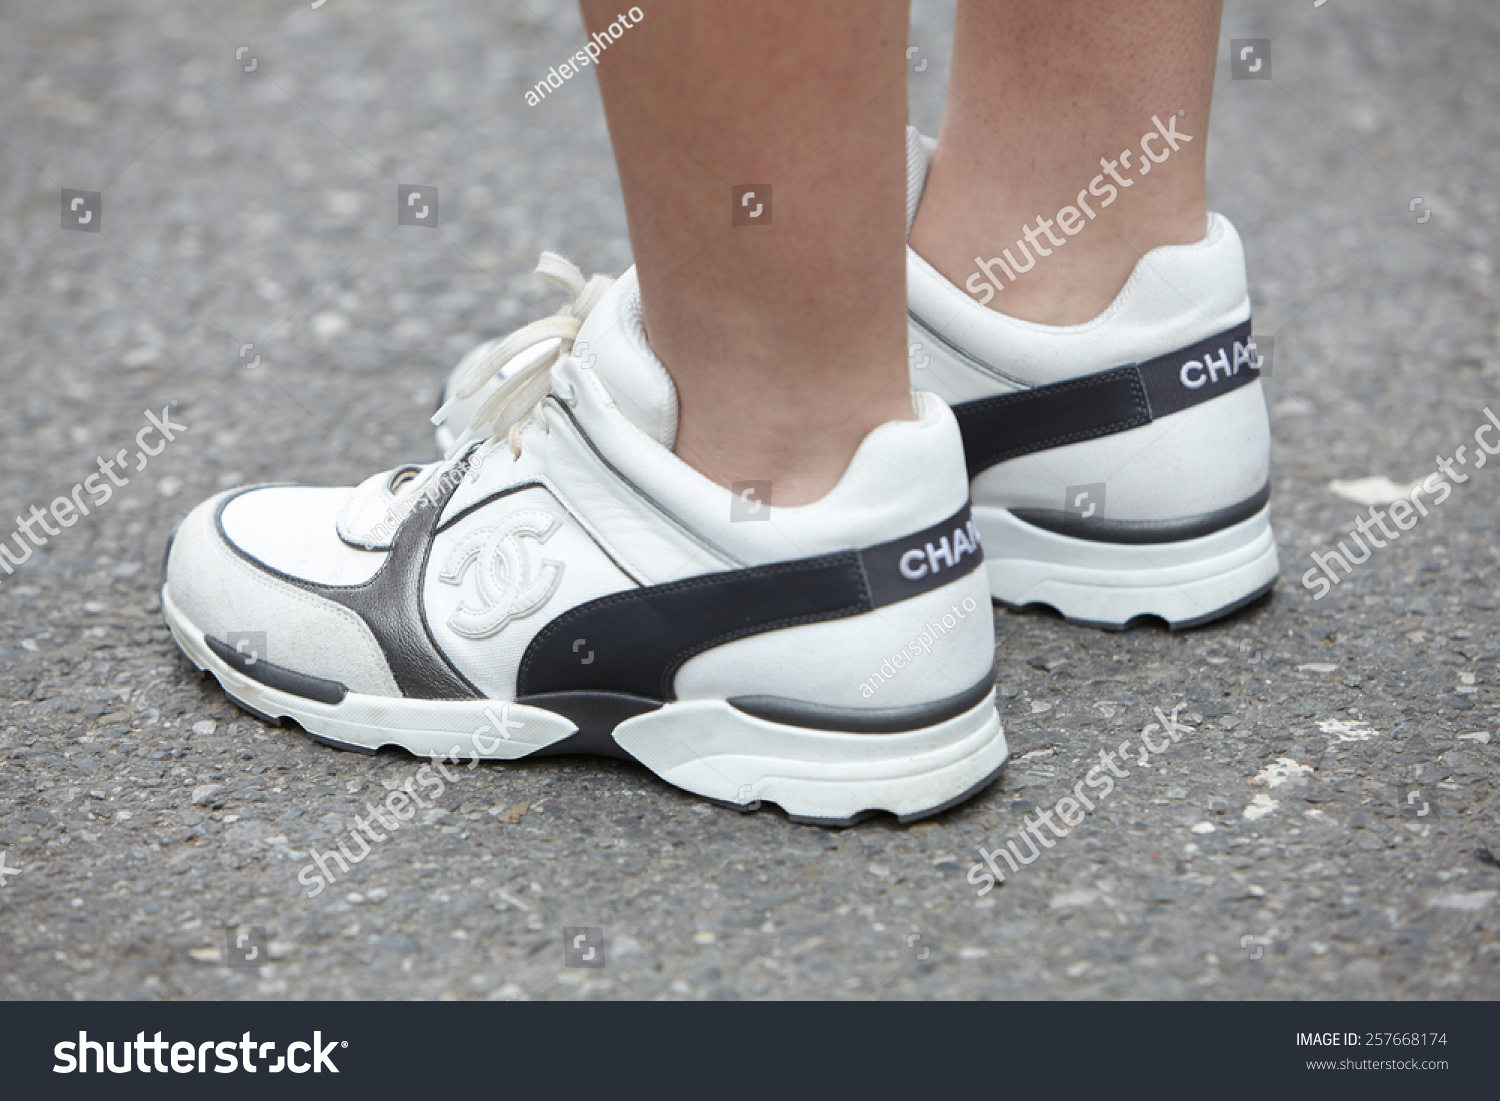 Chanel Sneakers 2016